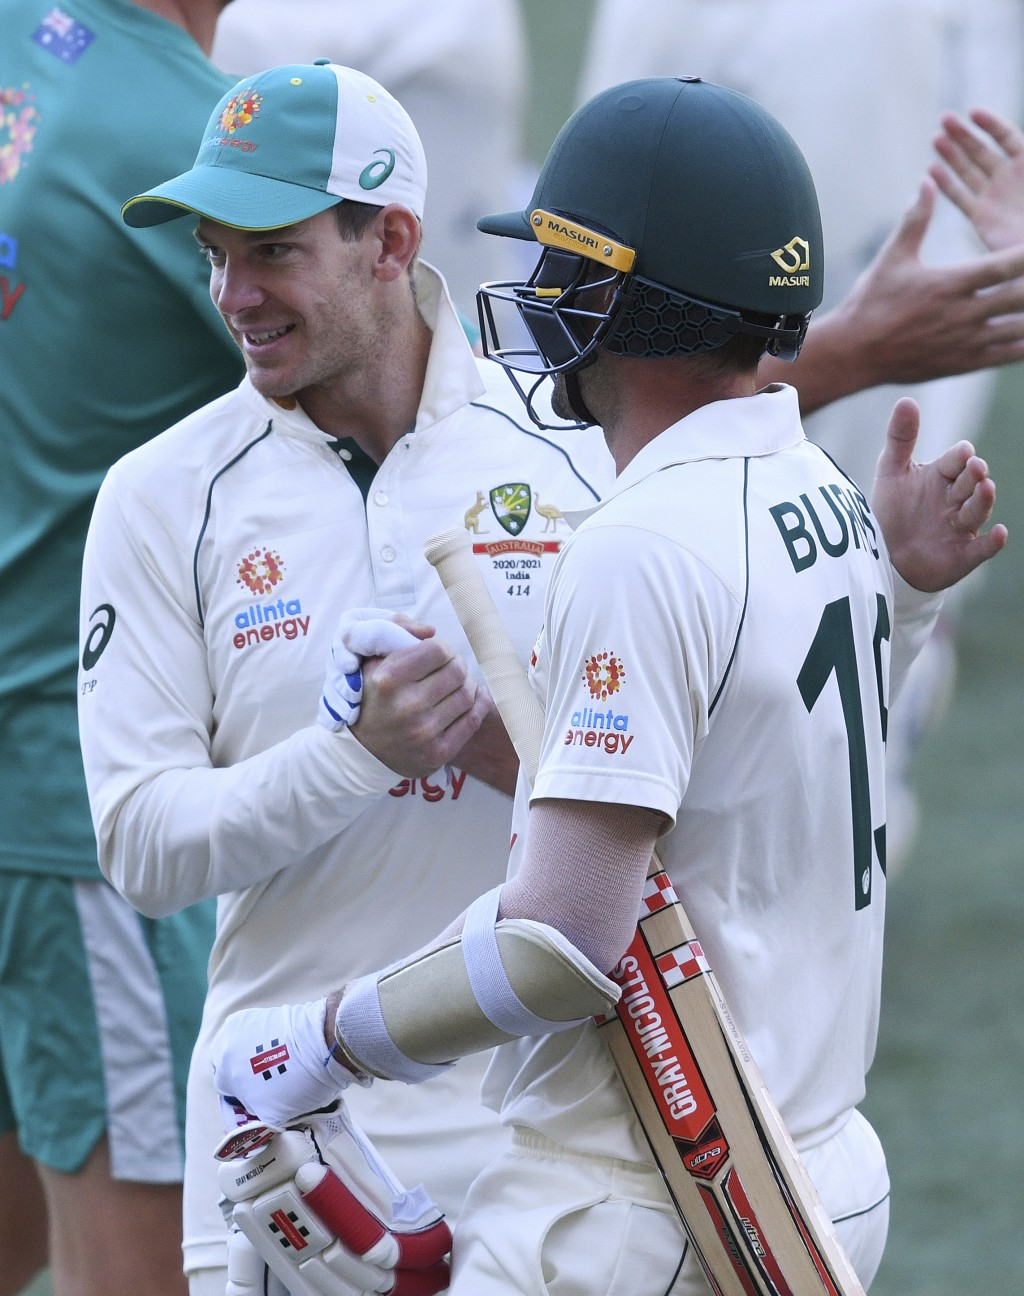 Australia's Joe Burns, right, is congratulated by his captain Tim Paine after Burns hit a 6 to win their match over India on the third day of their cr...